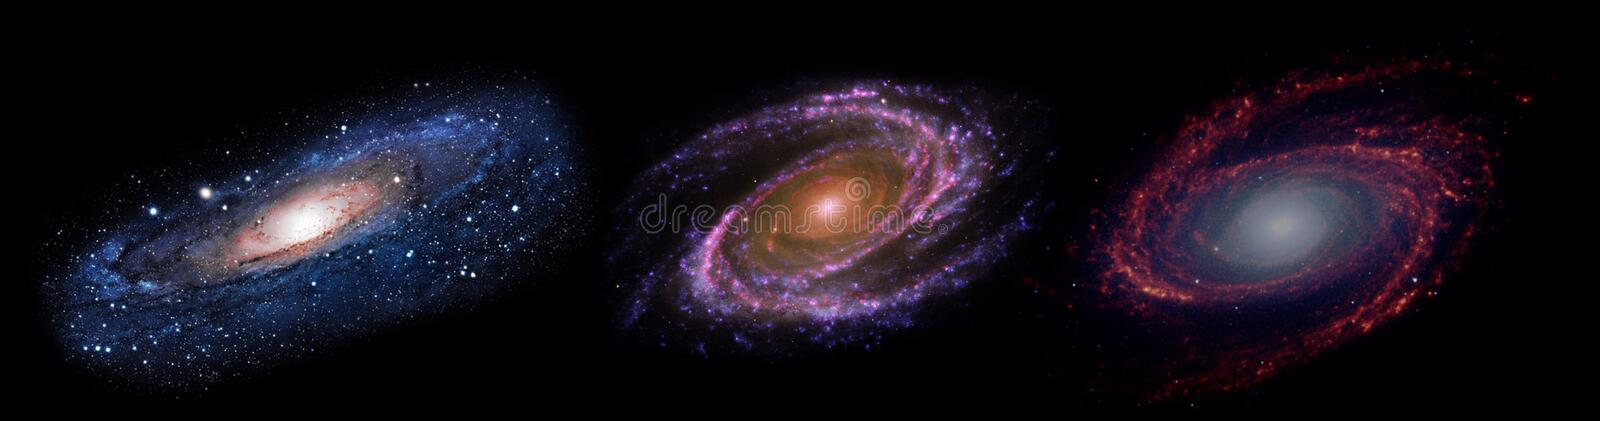 Planets and galaxy, science fiction wallpaper. stock photos